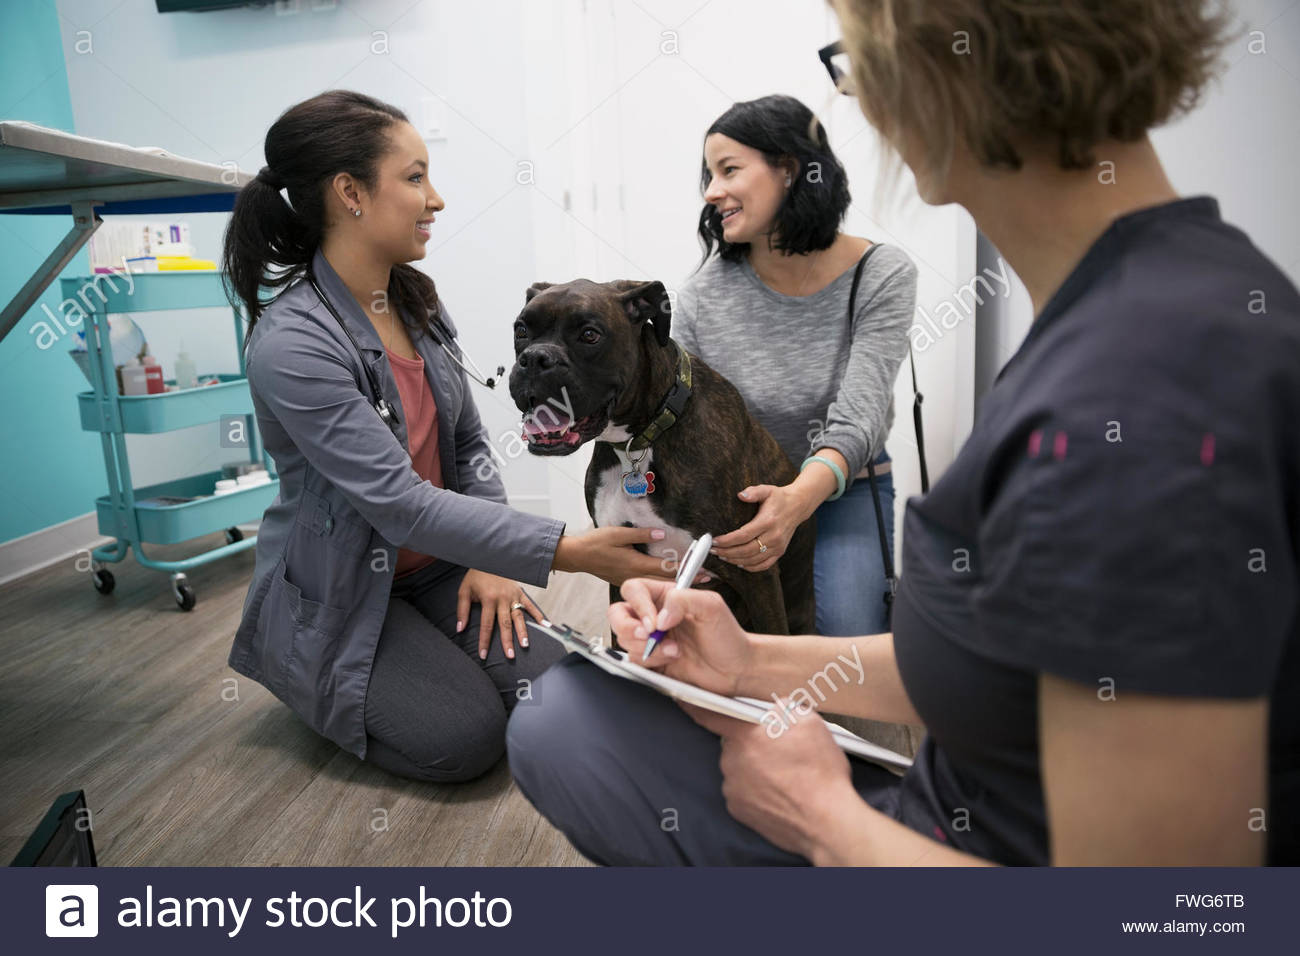 Veterinarians talking with dog owner clinic examination room - Stock Image